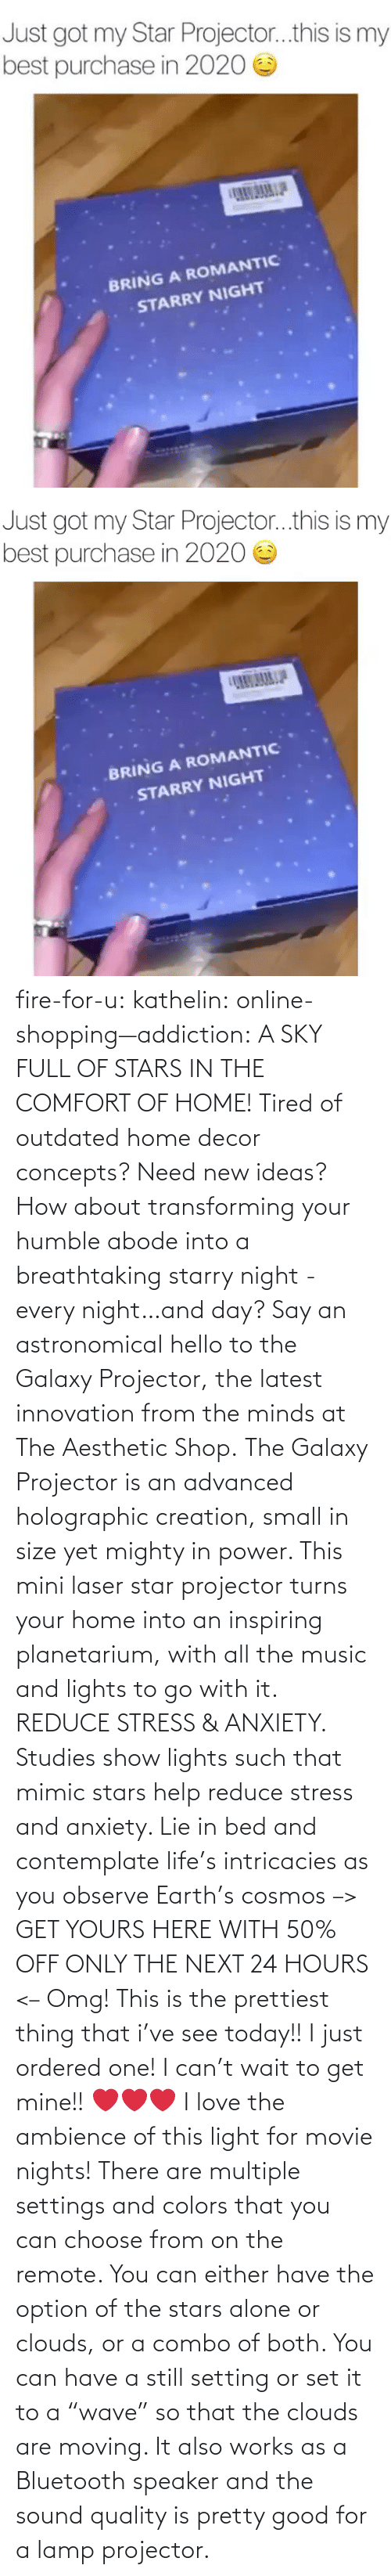 "Bit: fire-for-u:  kathelin: online-shopping—addiction:  A SKY FULL OF STARS IN THE COMFORT OF HOME! Tired of outdated home decor concepts? Need new ideas? How about transforming your humble abode into a breathtaking starry night - every night…and day? Say an astronomical hello to the Galaxy Projector, the latest innovation from the minds at The Aesthetic Shop. The Galaxy Projector is an advanced holographic creation, small in size yet mighty in power. This mini laser star projector turns your home into an inspiring planetarium, with all the music and lights to go with it. REDUCE STRESS & ANXIETY. Studies show lights such that mimic stars help reduce stress and anxiety. Lie in bed and contemplate life's intricacies as you observe Earth's cosmos  –> GET YOURS HERE WITH 50% OFF ONLY THE NEXT 24 HOURS <–   Omg! This is the prettiest thing that i've see today!! I just ordered one! I can't wait to get mine!! ❤️️❤️️❤️️  I love the ambience of this light for movie nights! There are multiple settings and colors that you can choose from on the remote. You can either have the option of the stars alone or clouds, or a combo of both. You can have a still setting or set it to a ""wave"" so that the clouds are moving. It also works as a Bluetooth speaker and the sound quality is pretty good for a lamp projector."